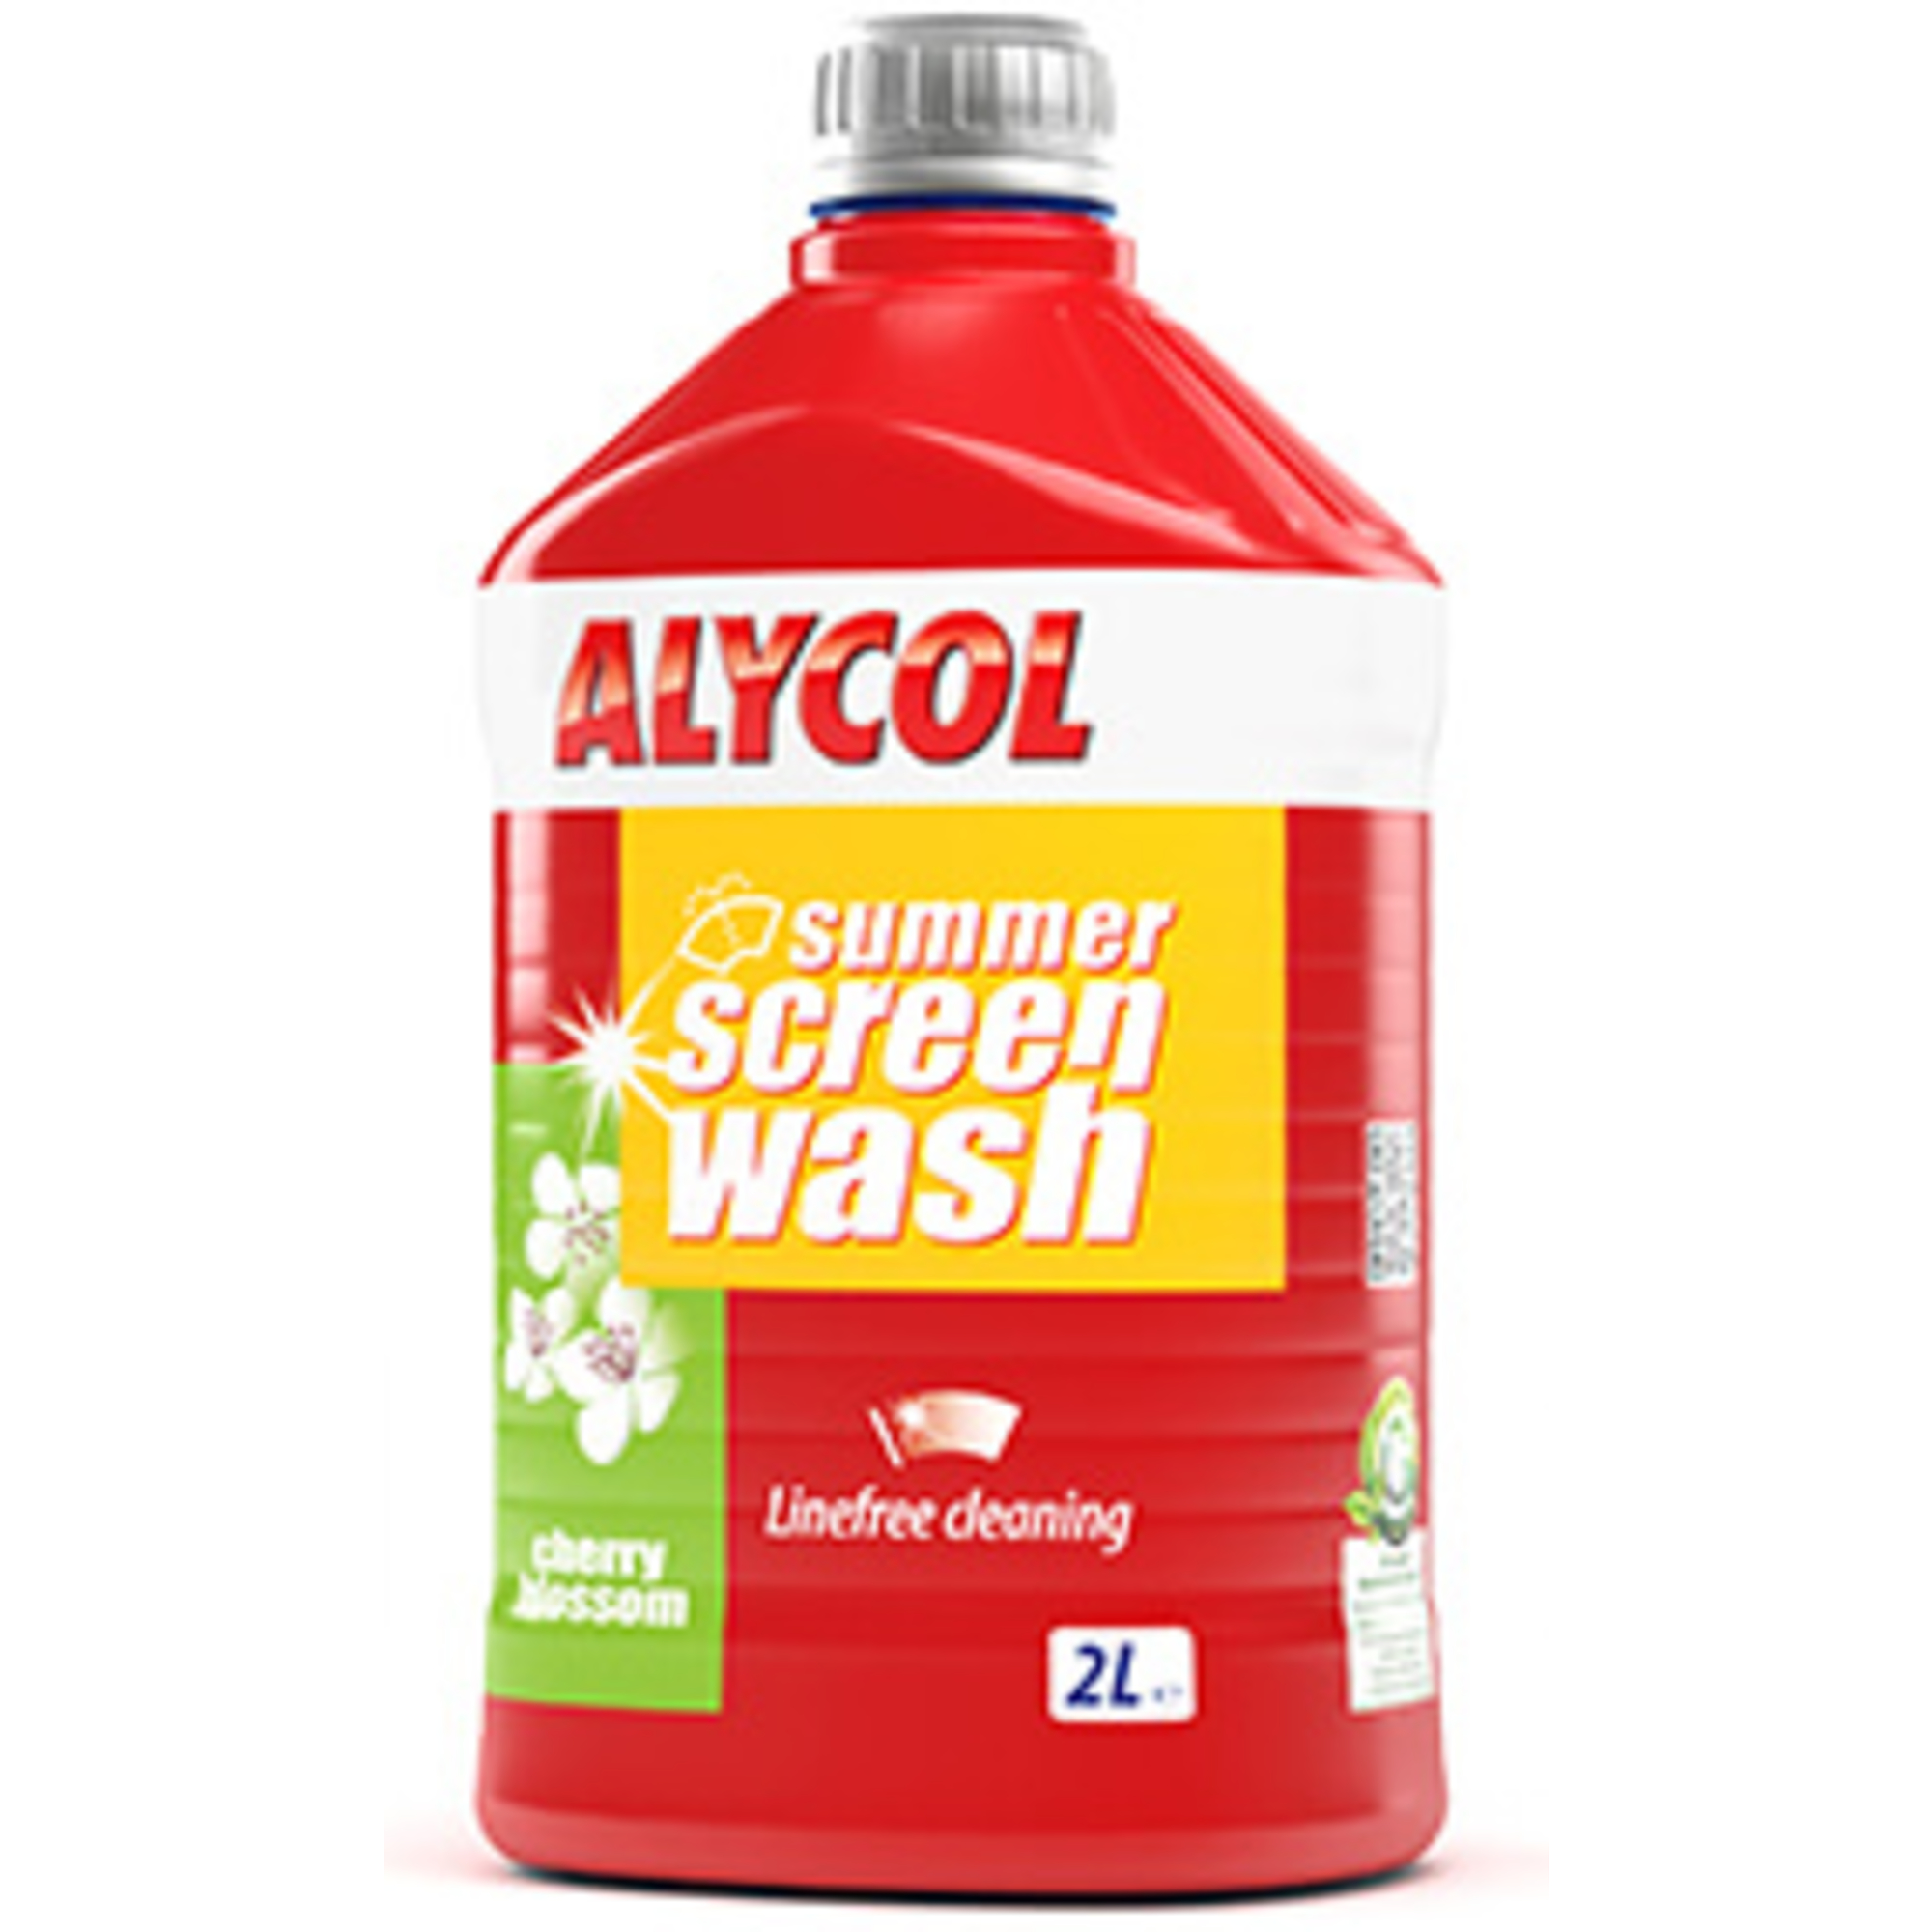 Alycol Summer Cherry Blossom 4L 19003594